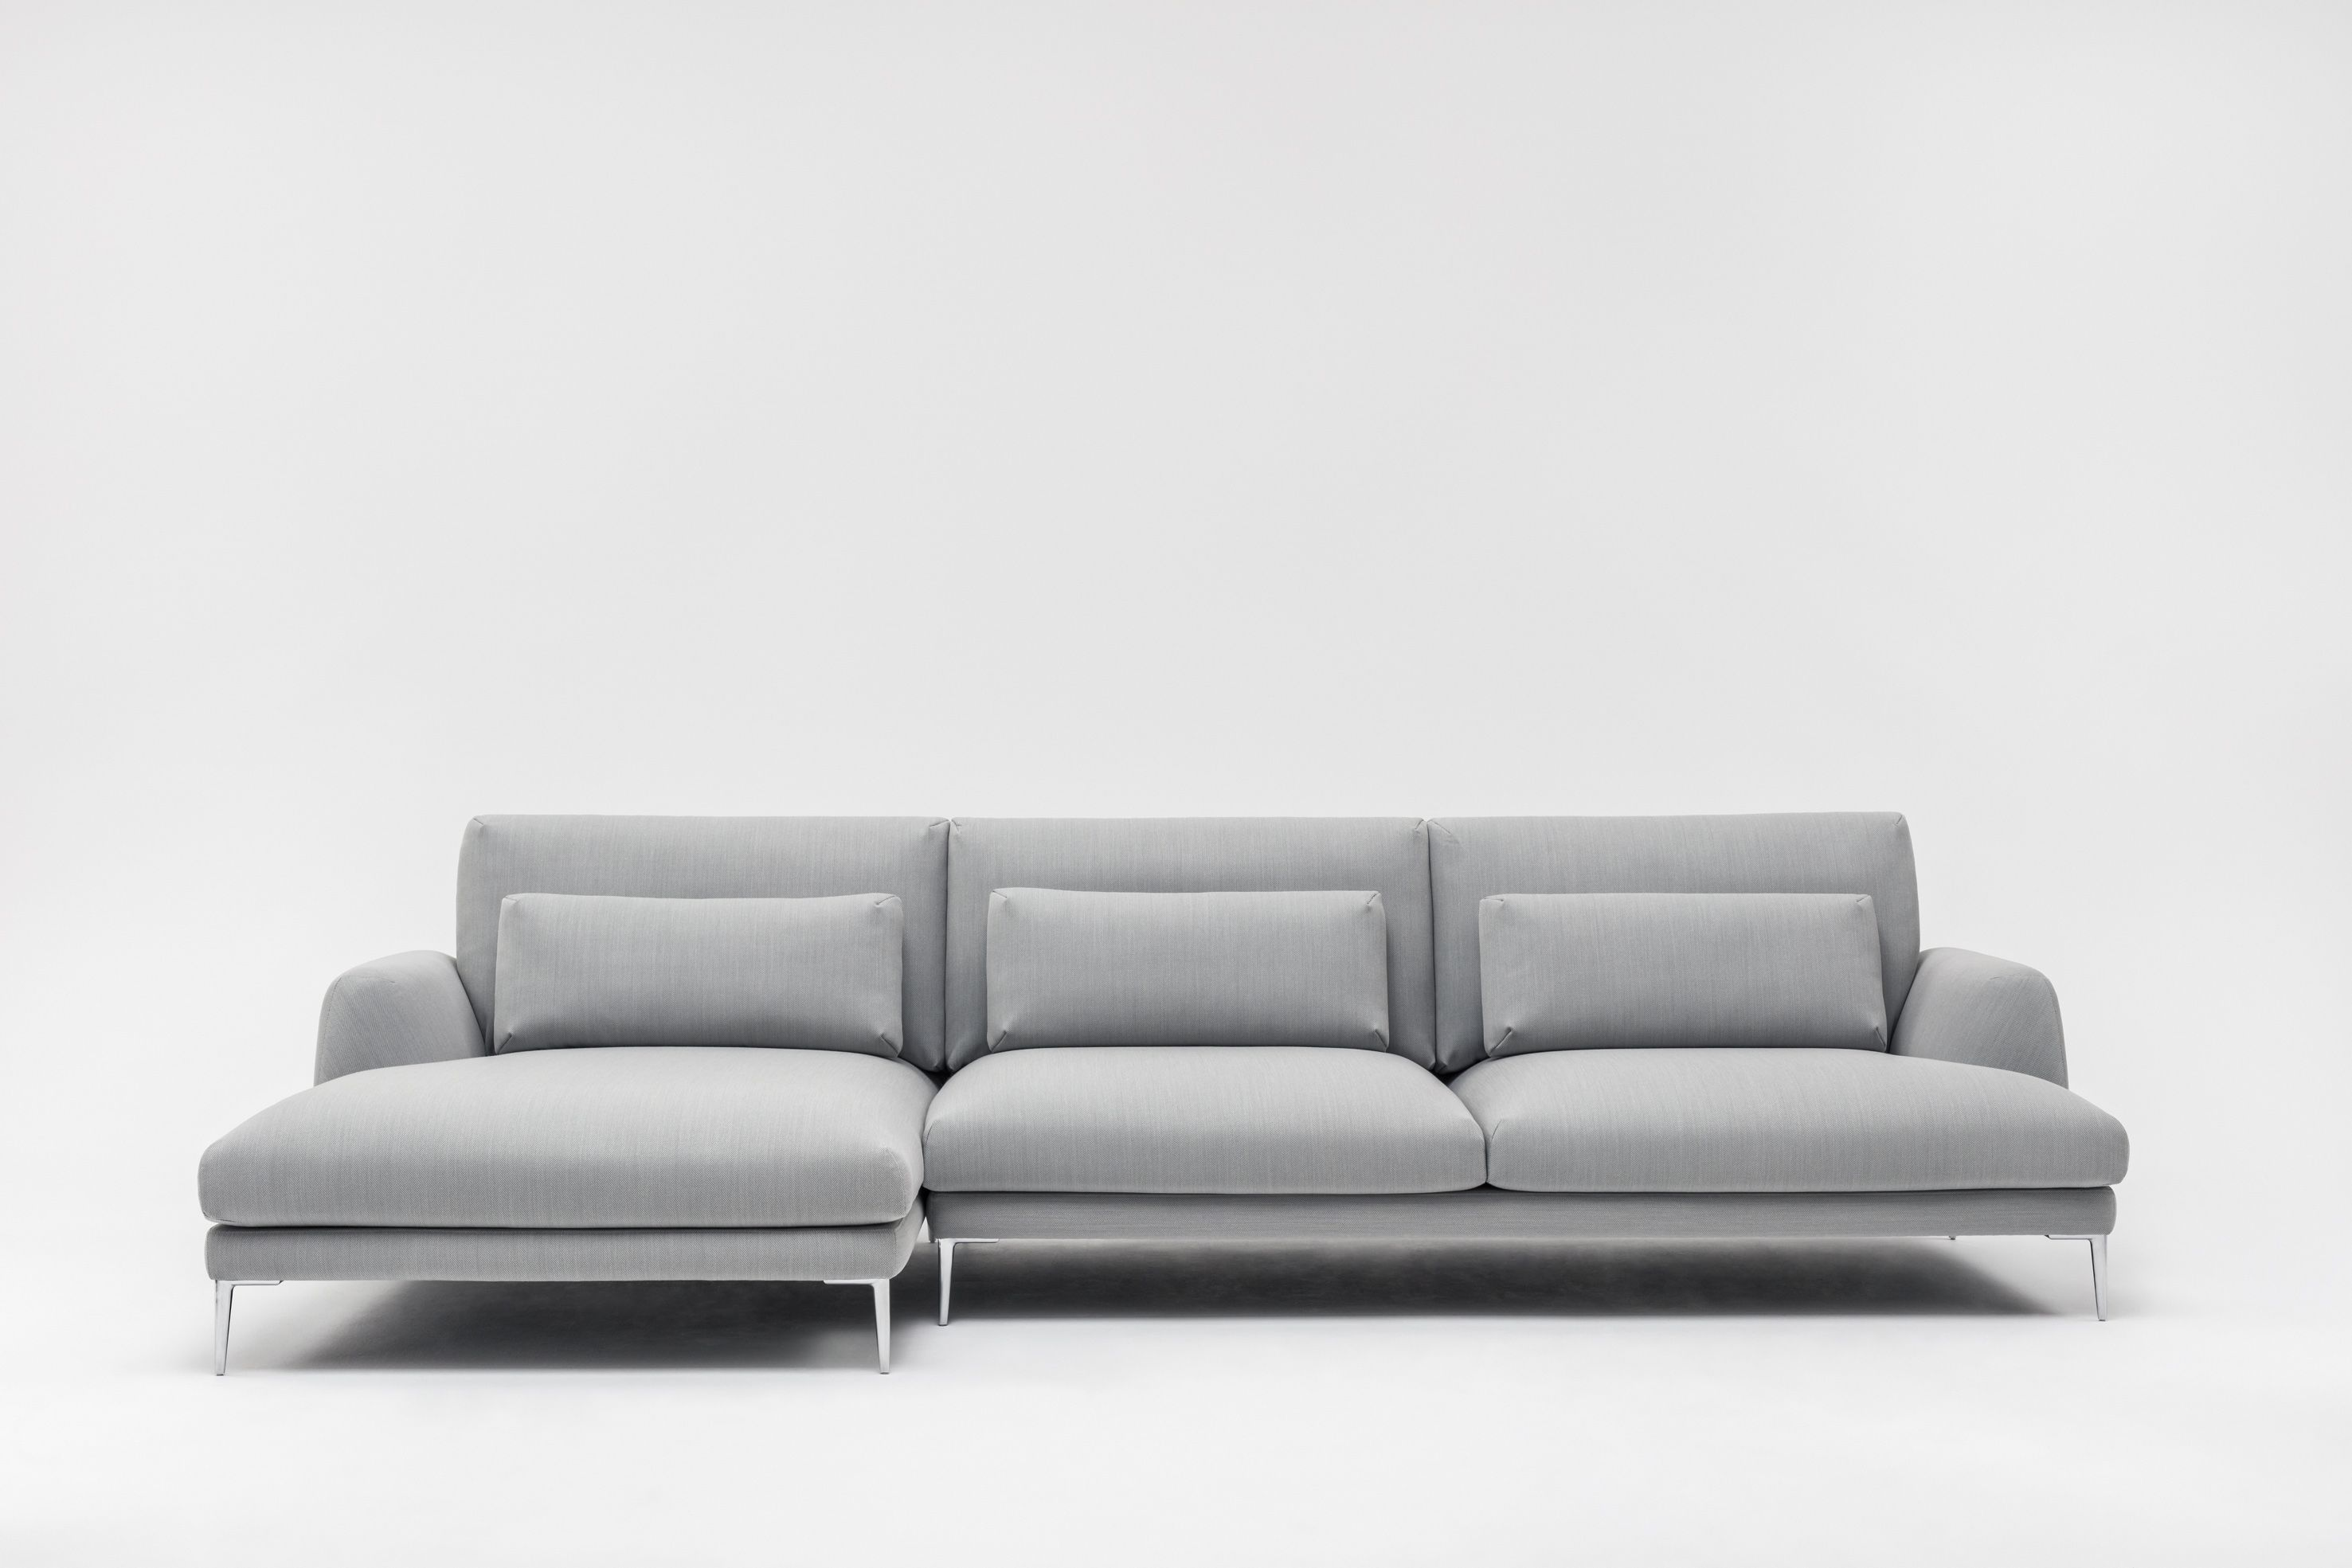 Classic sofa design for forty by Krystian Kowalski